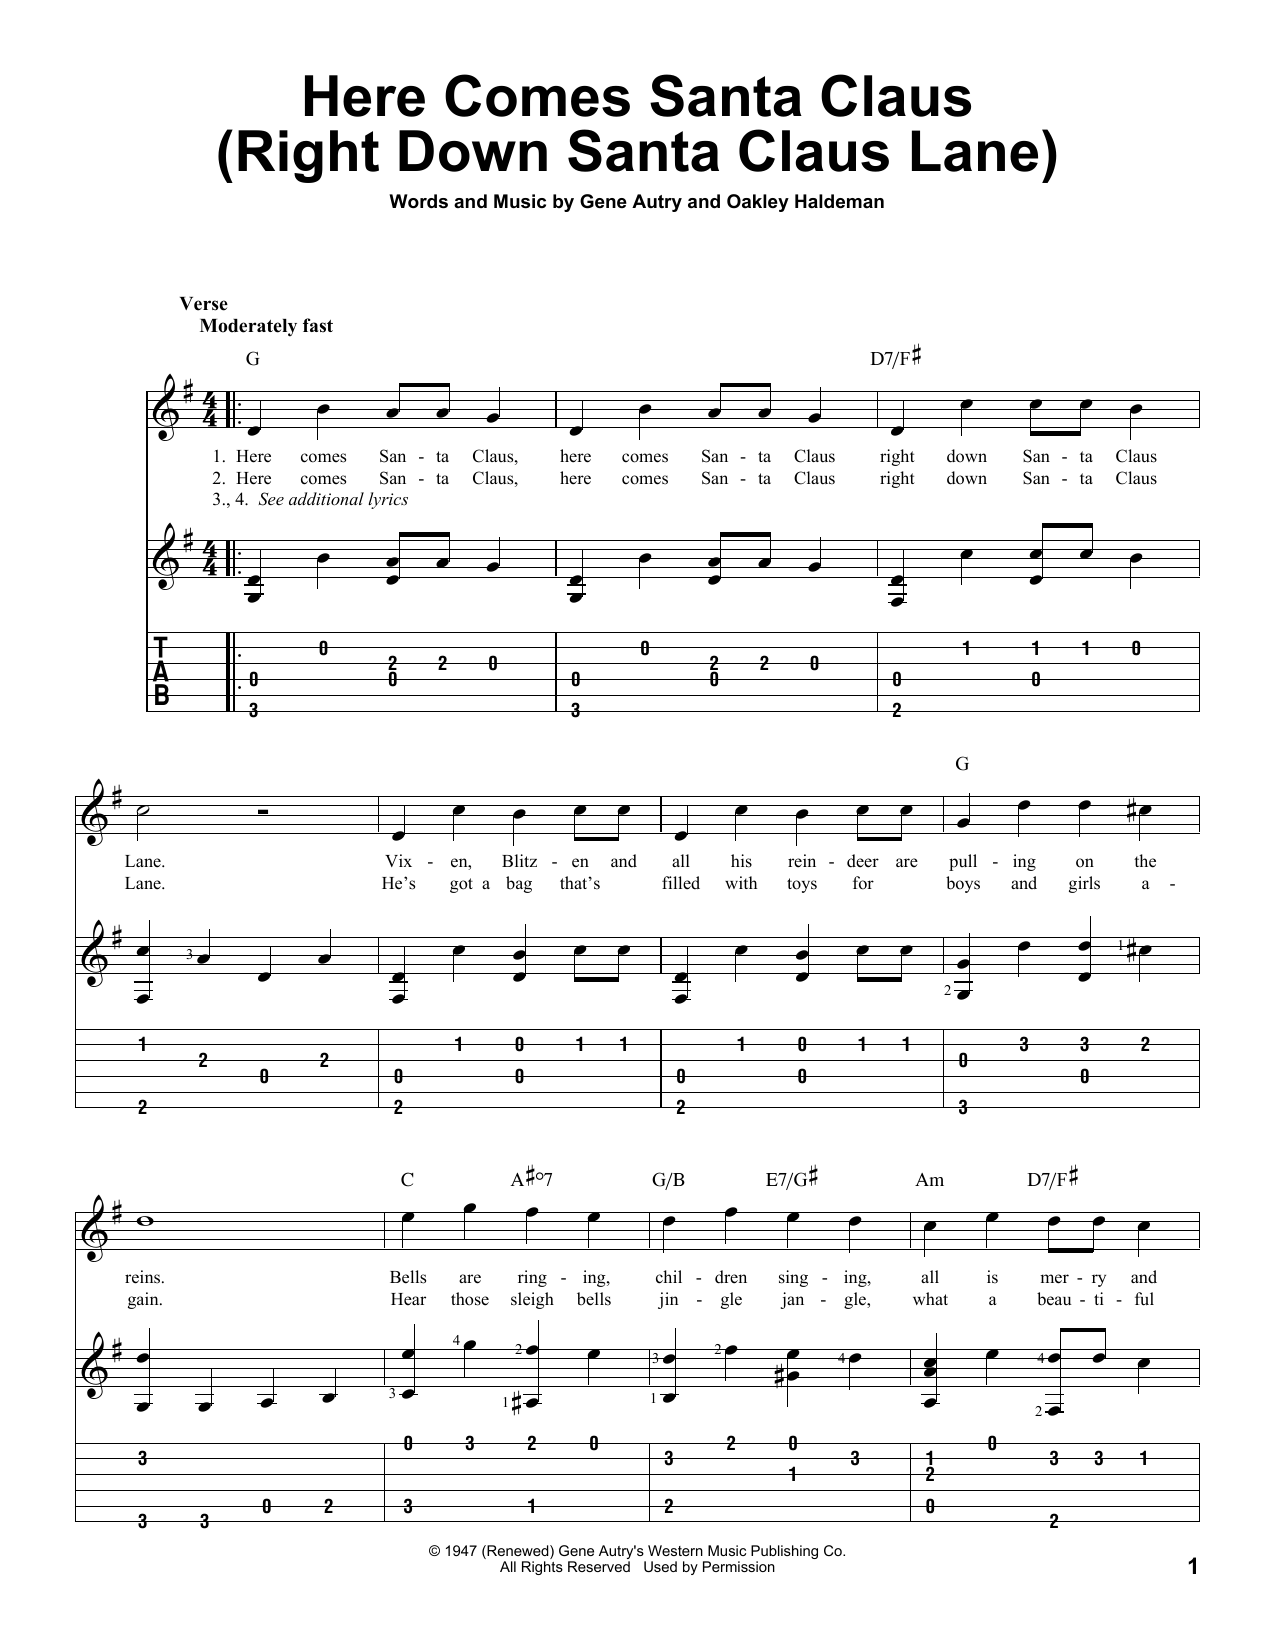 Here comes santa claus piano sheet music pdf